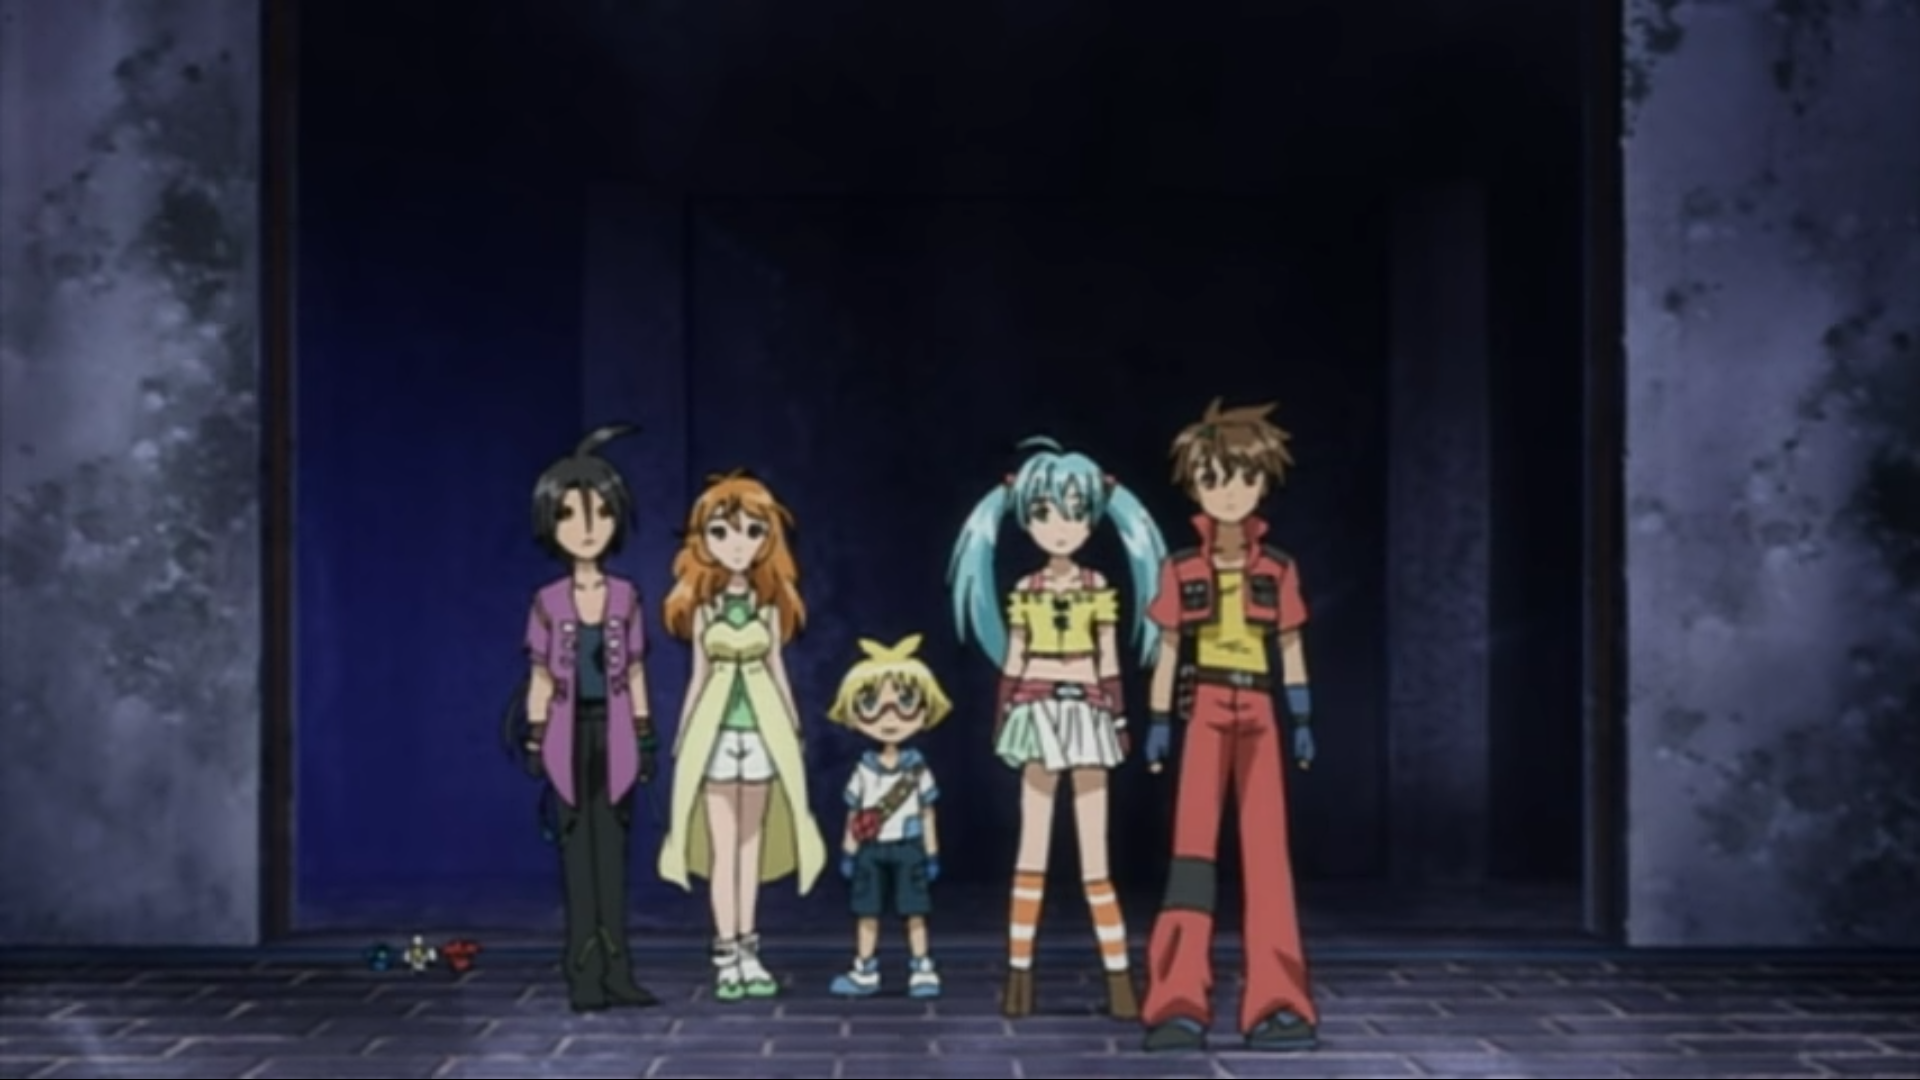 Pin by Guan Jie on [ anime ] bakugan in 2020 Anime, My